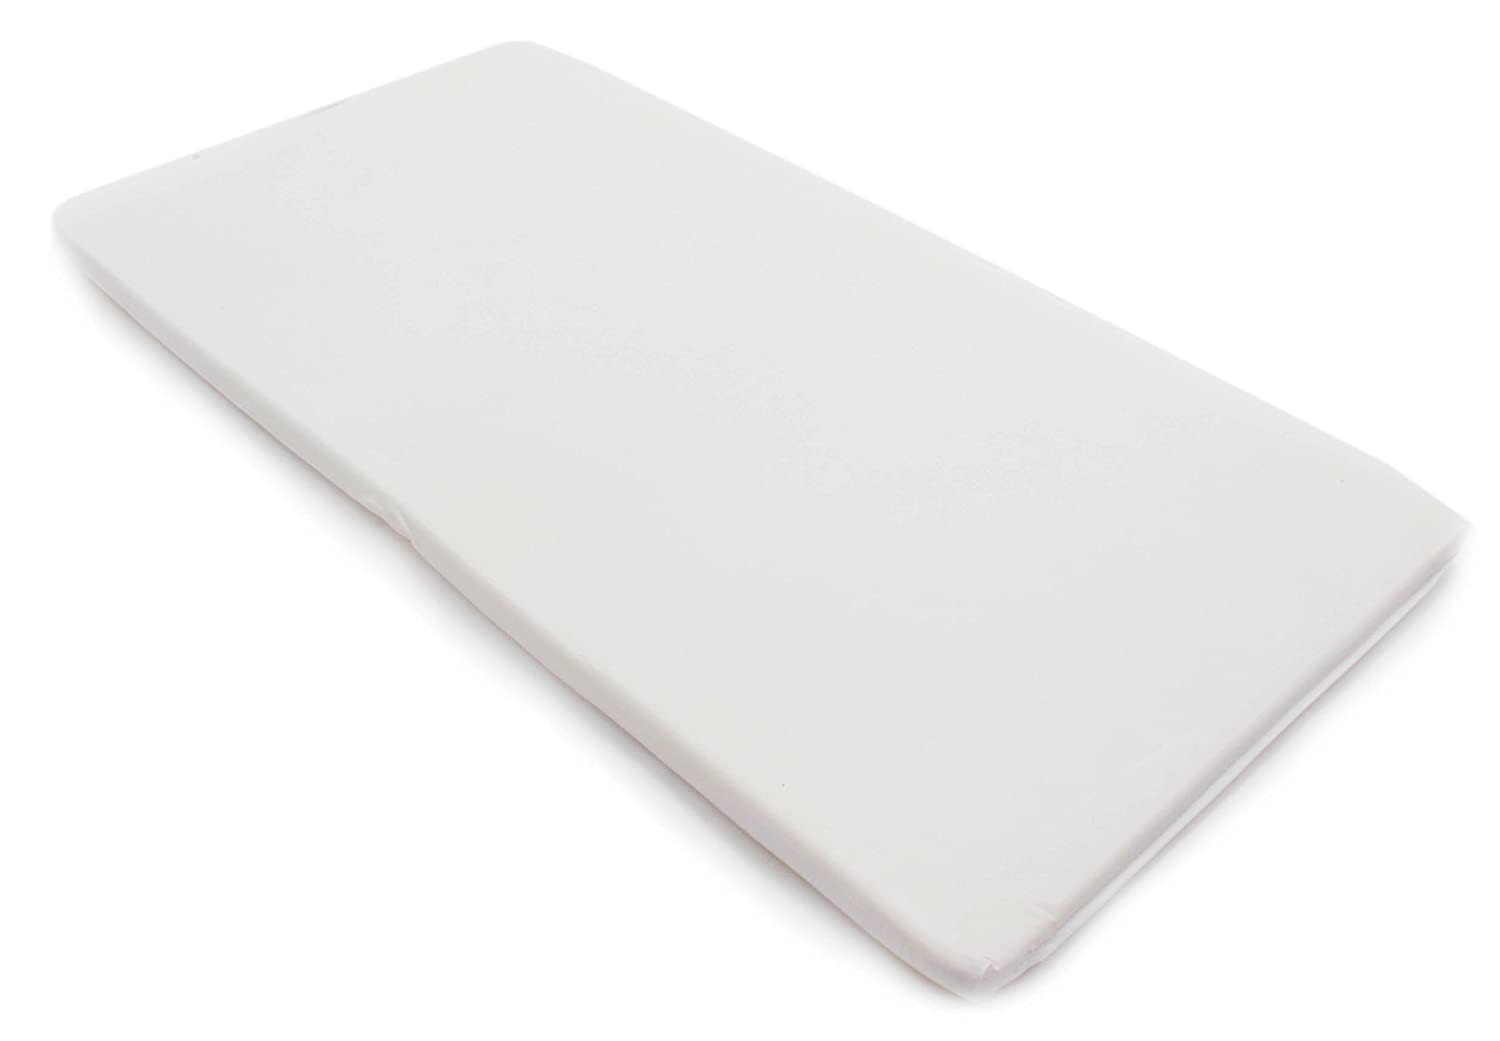 LA Baby Changing Table Pad by LA Baby   B00BQYVQSE